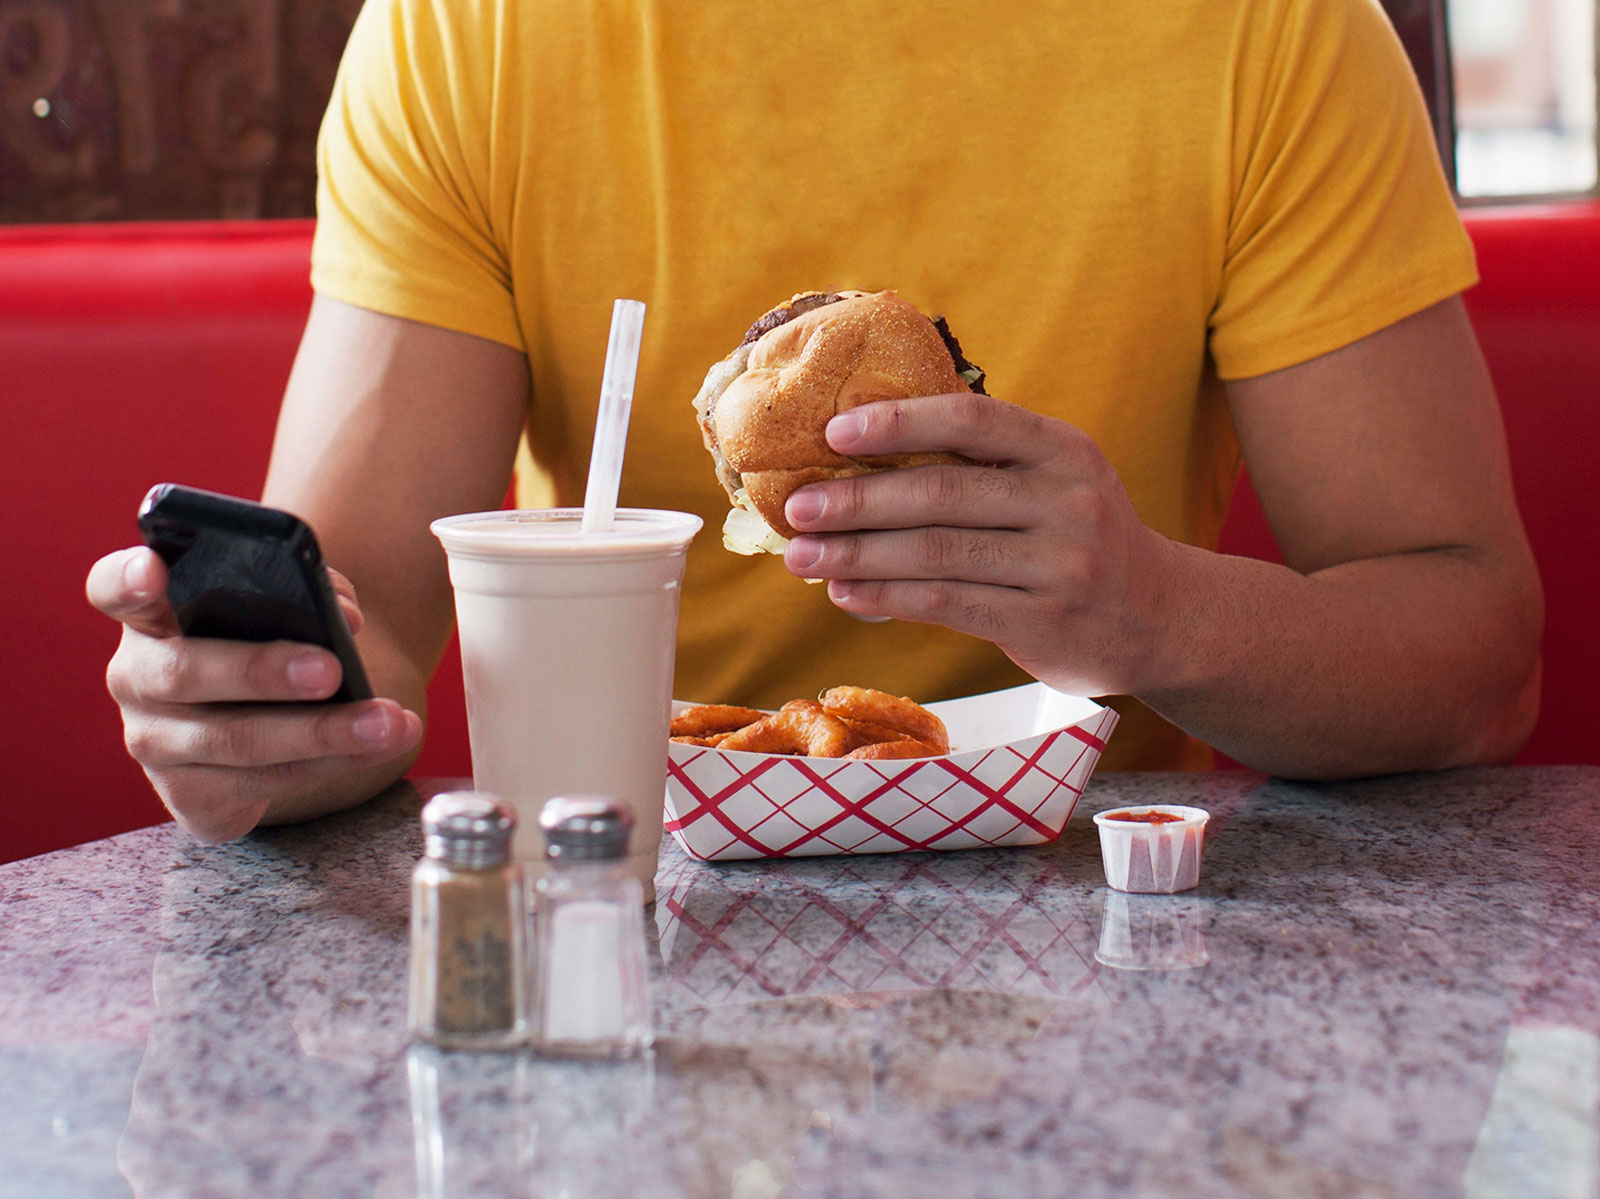 popular fast food restaurants on social media